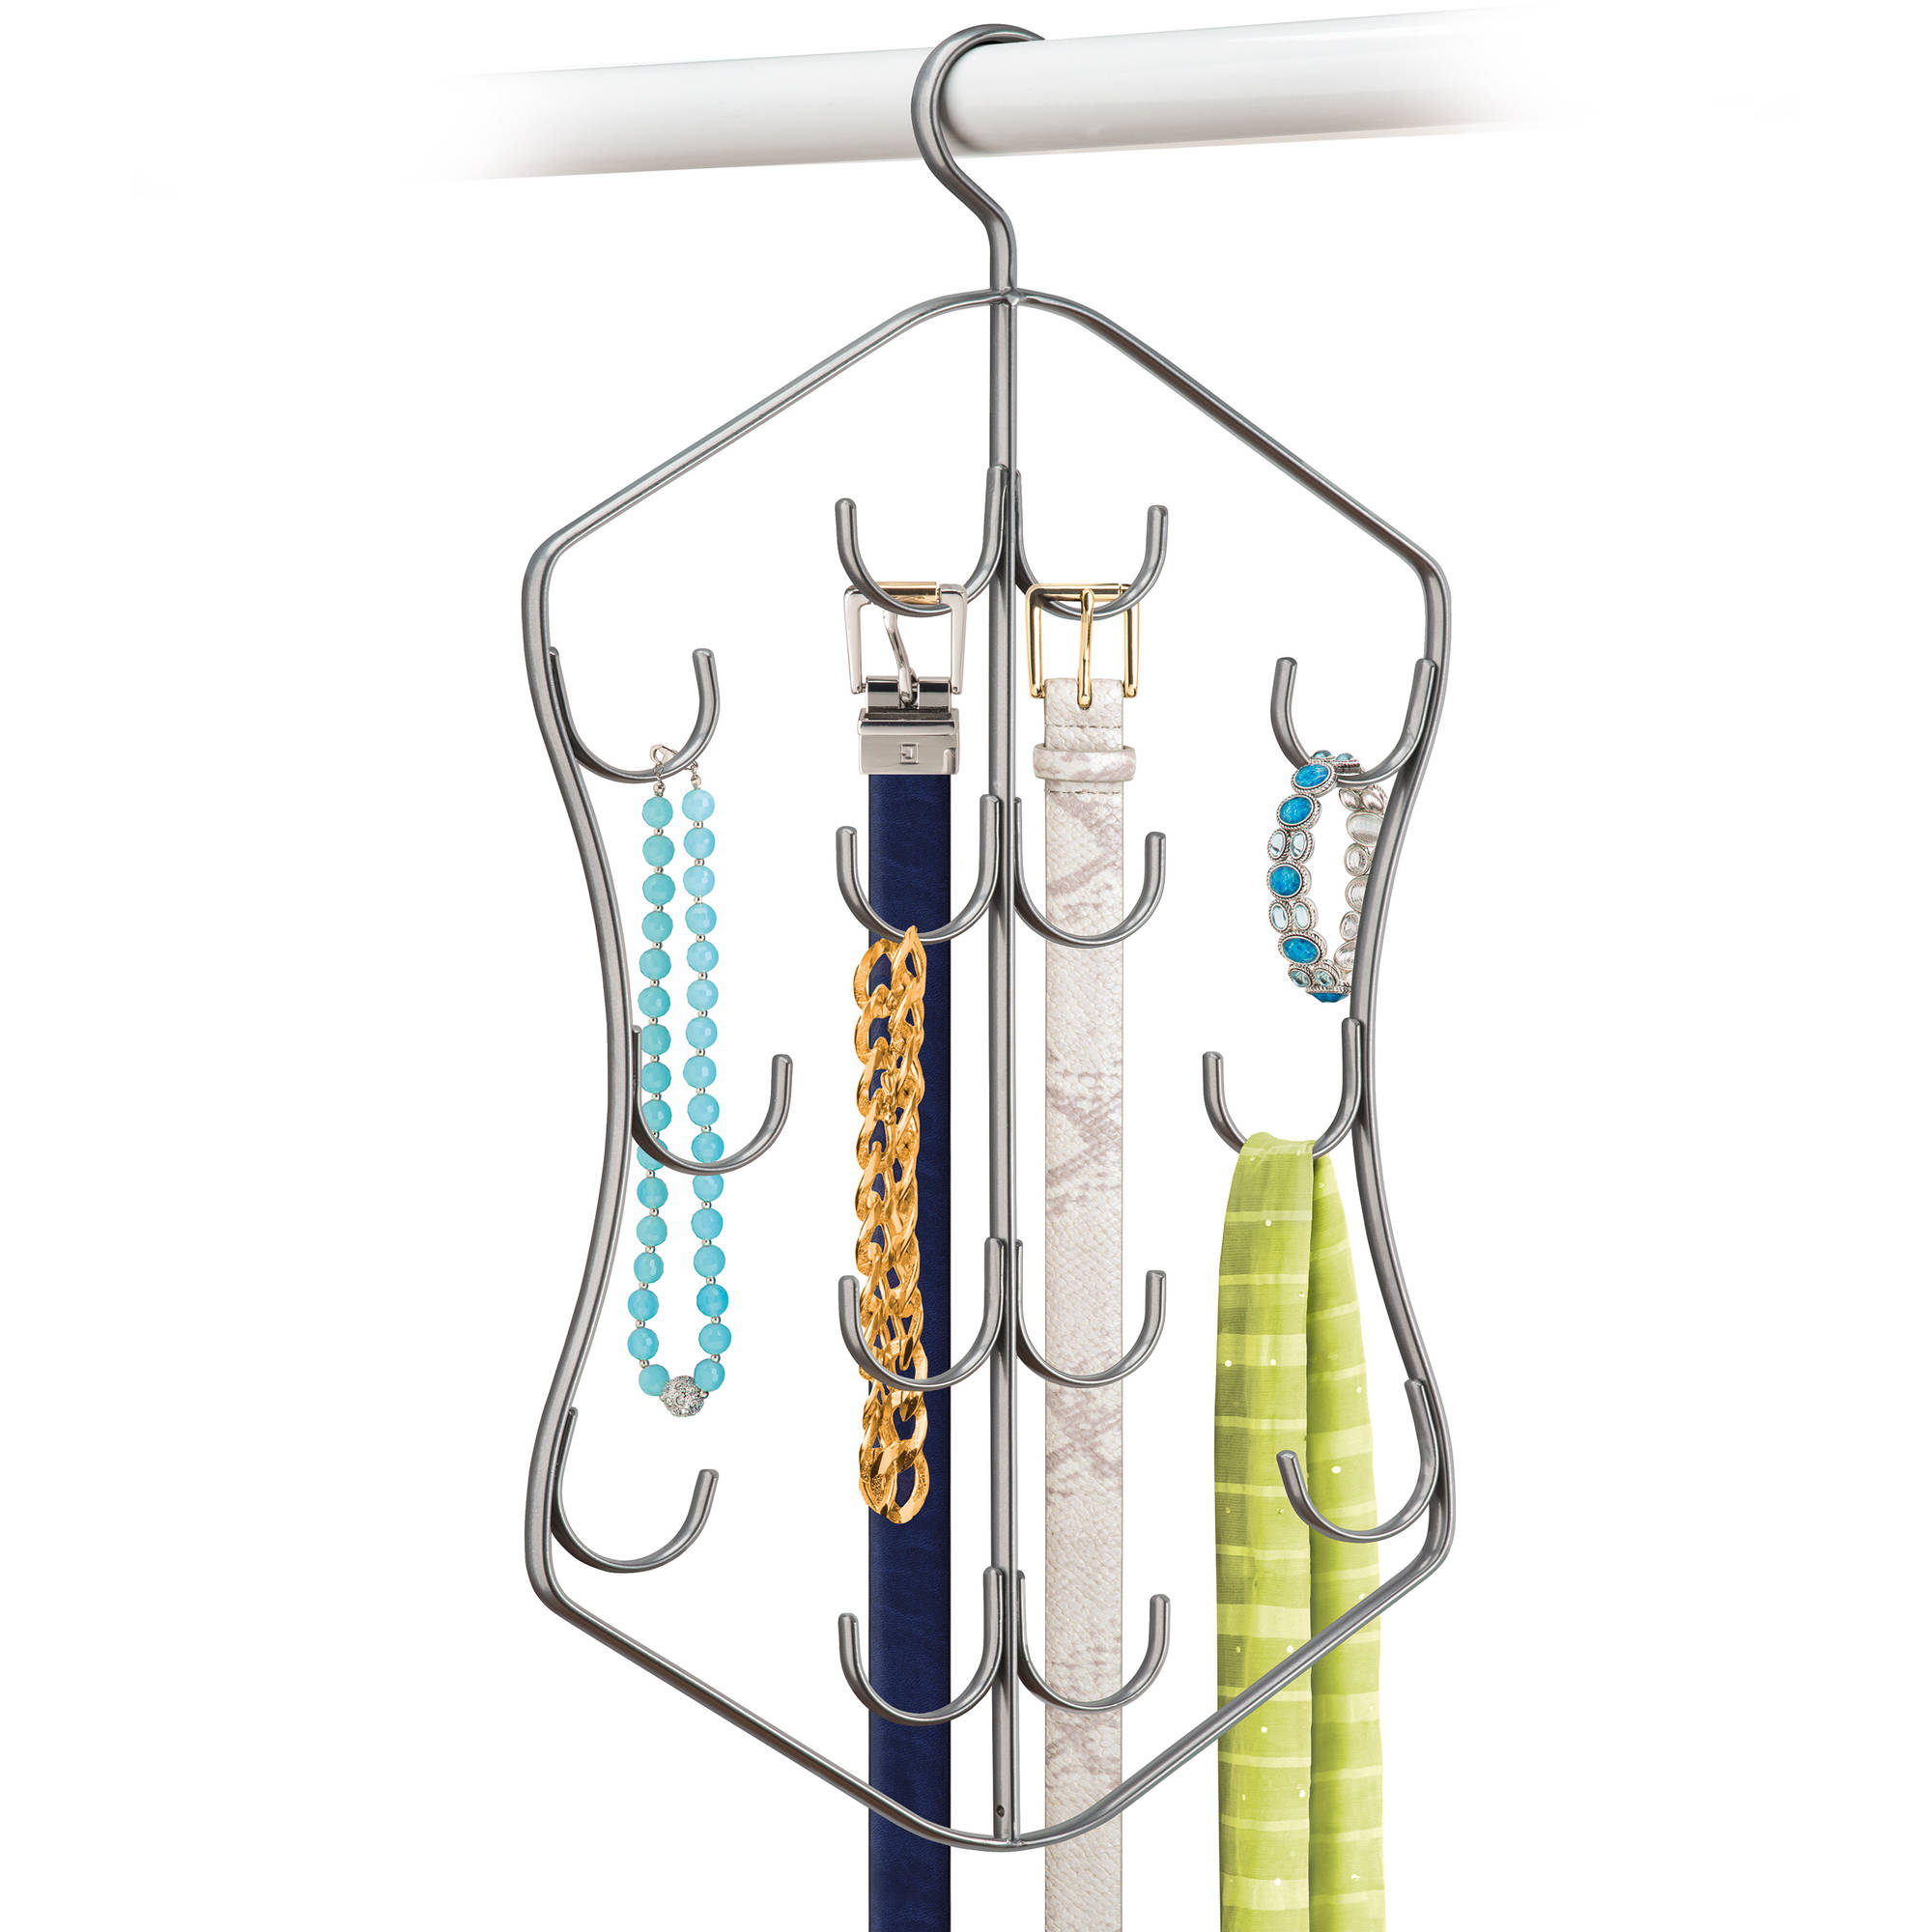 Lynk Hanging Jewelry, Scarf, and Accessory Organizer - 14 Hook Closet Organizer Rack for Scarves, Belts, and Jewelry - Platinum